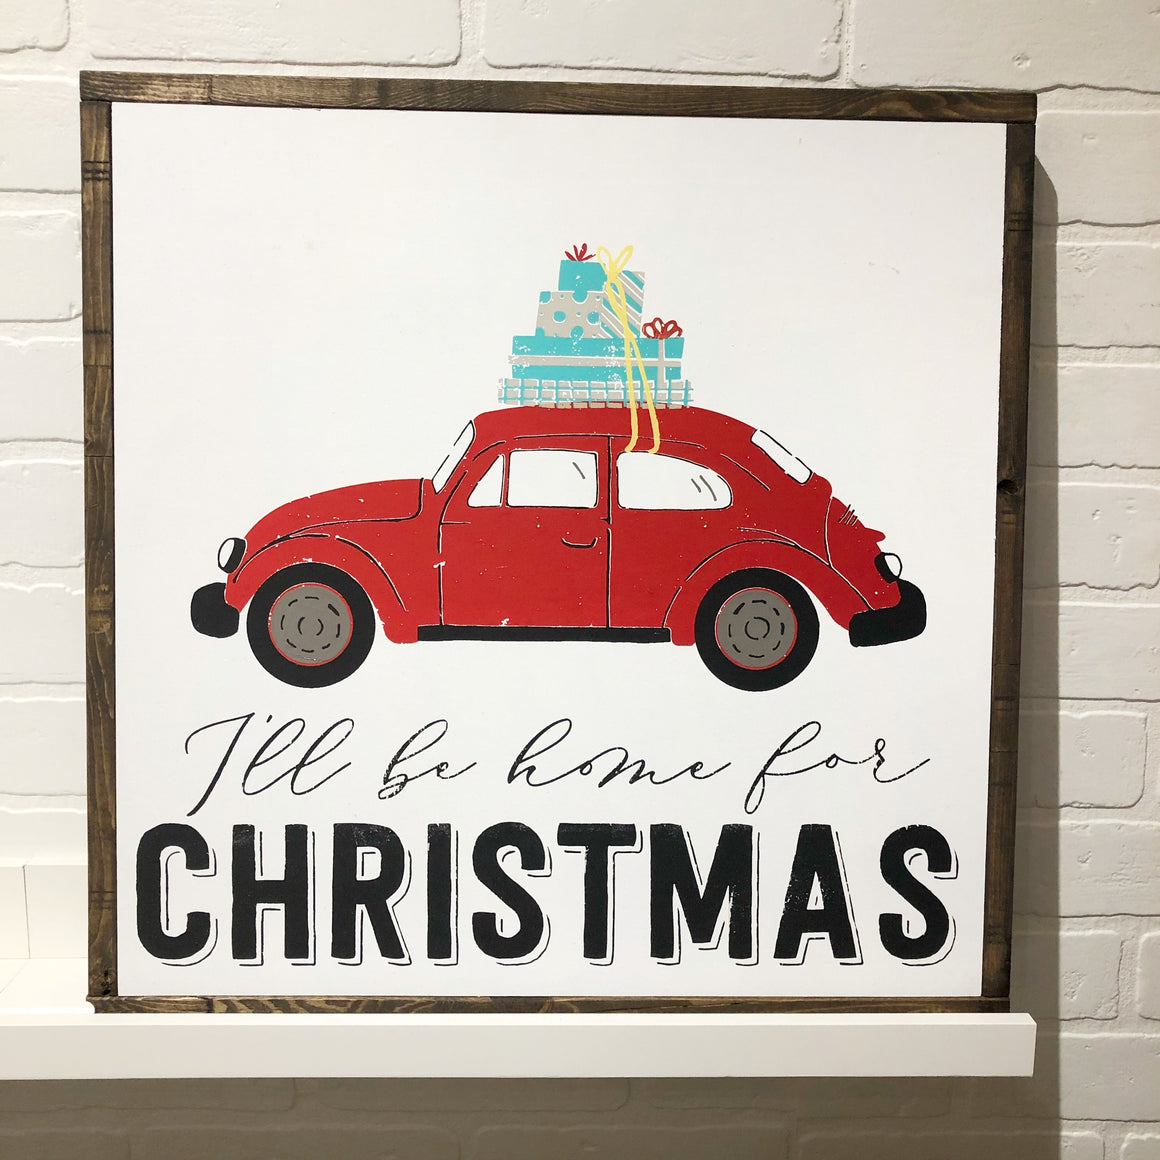 Holiday Wooden Framed Sign with Transfers | Nov. 16